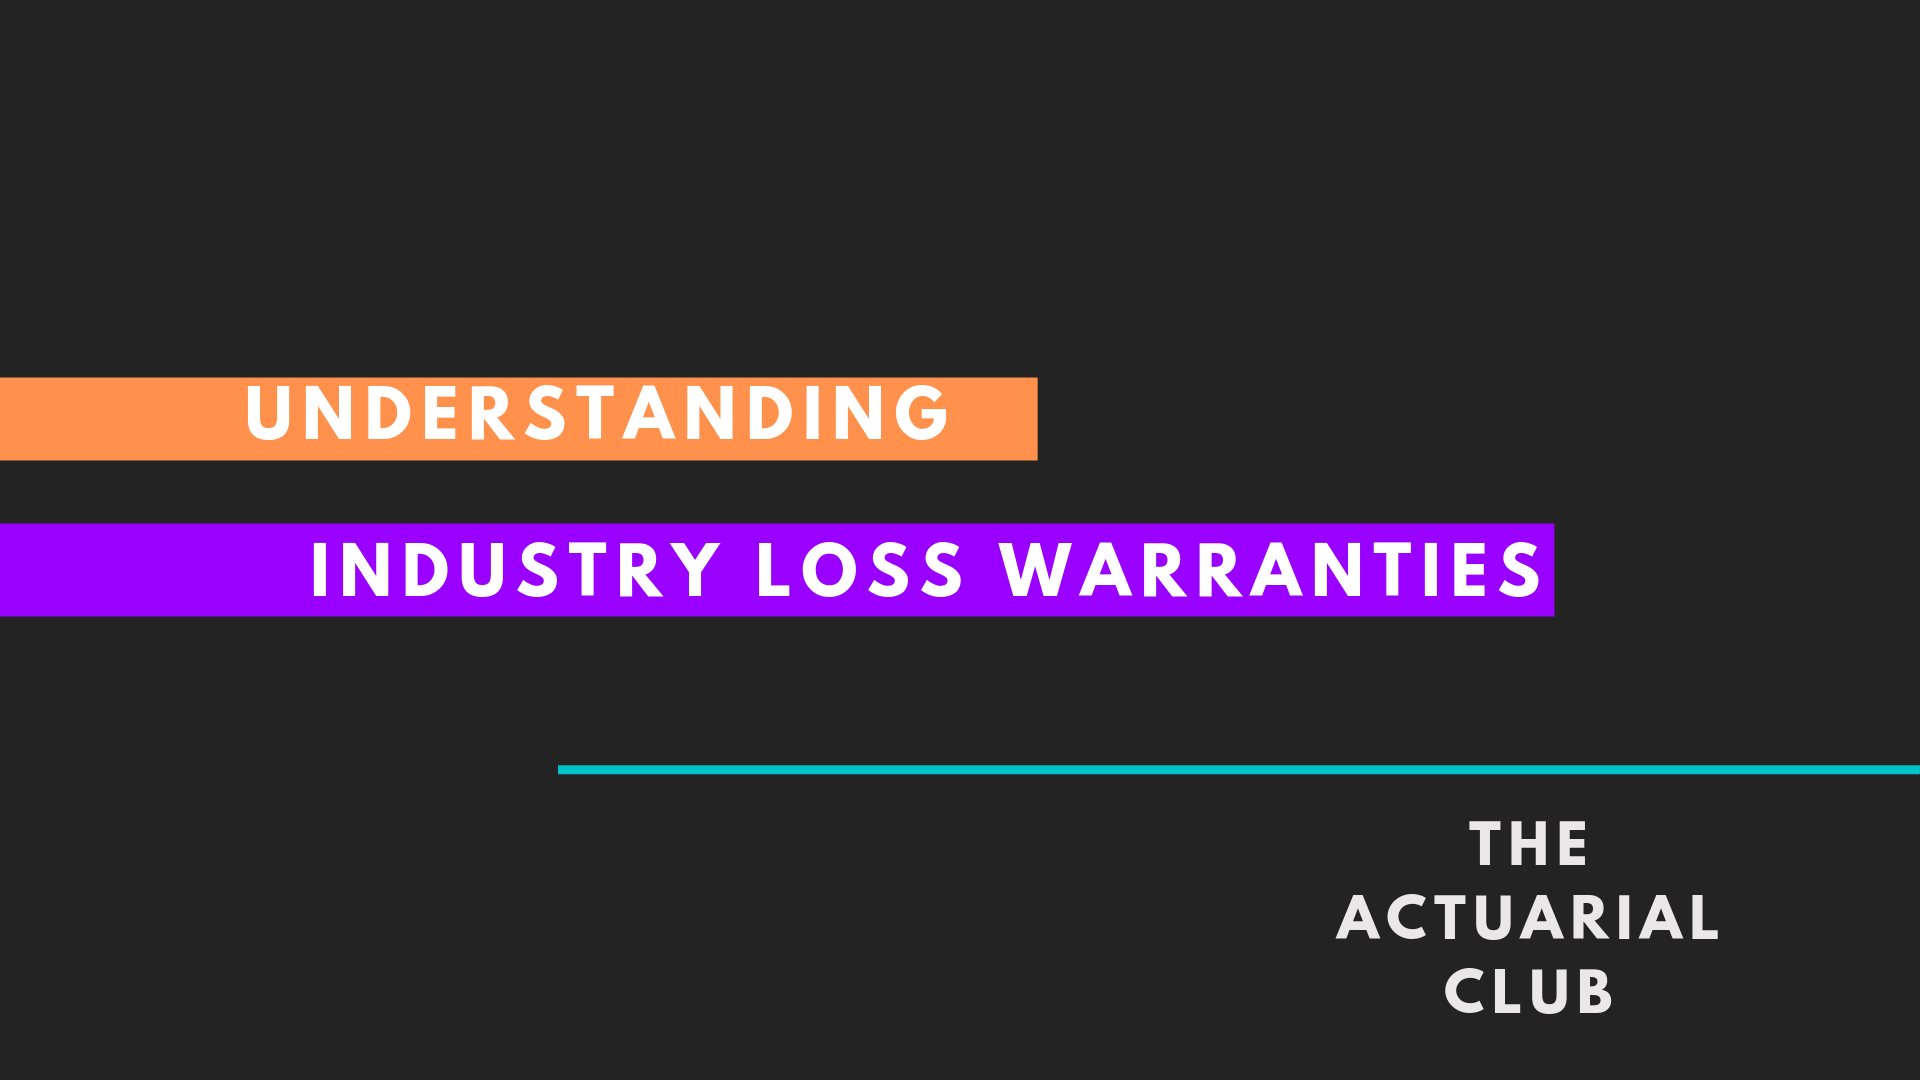 Industry Loss Warranties (ILWs)